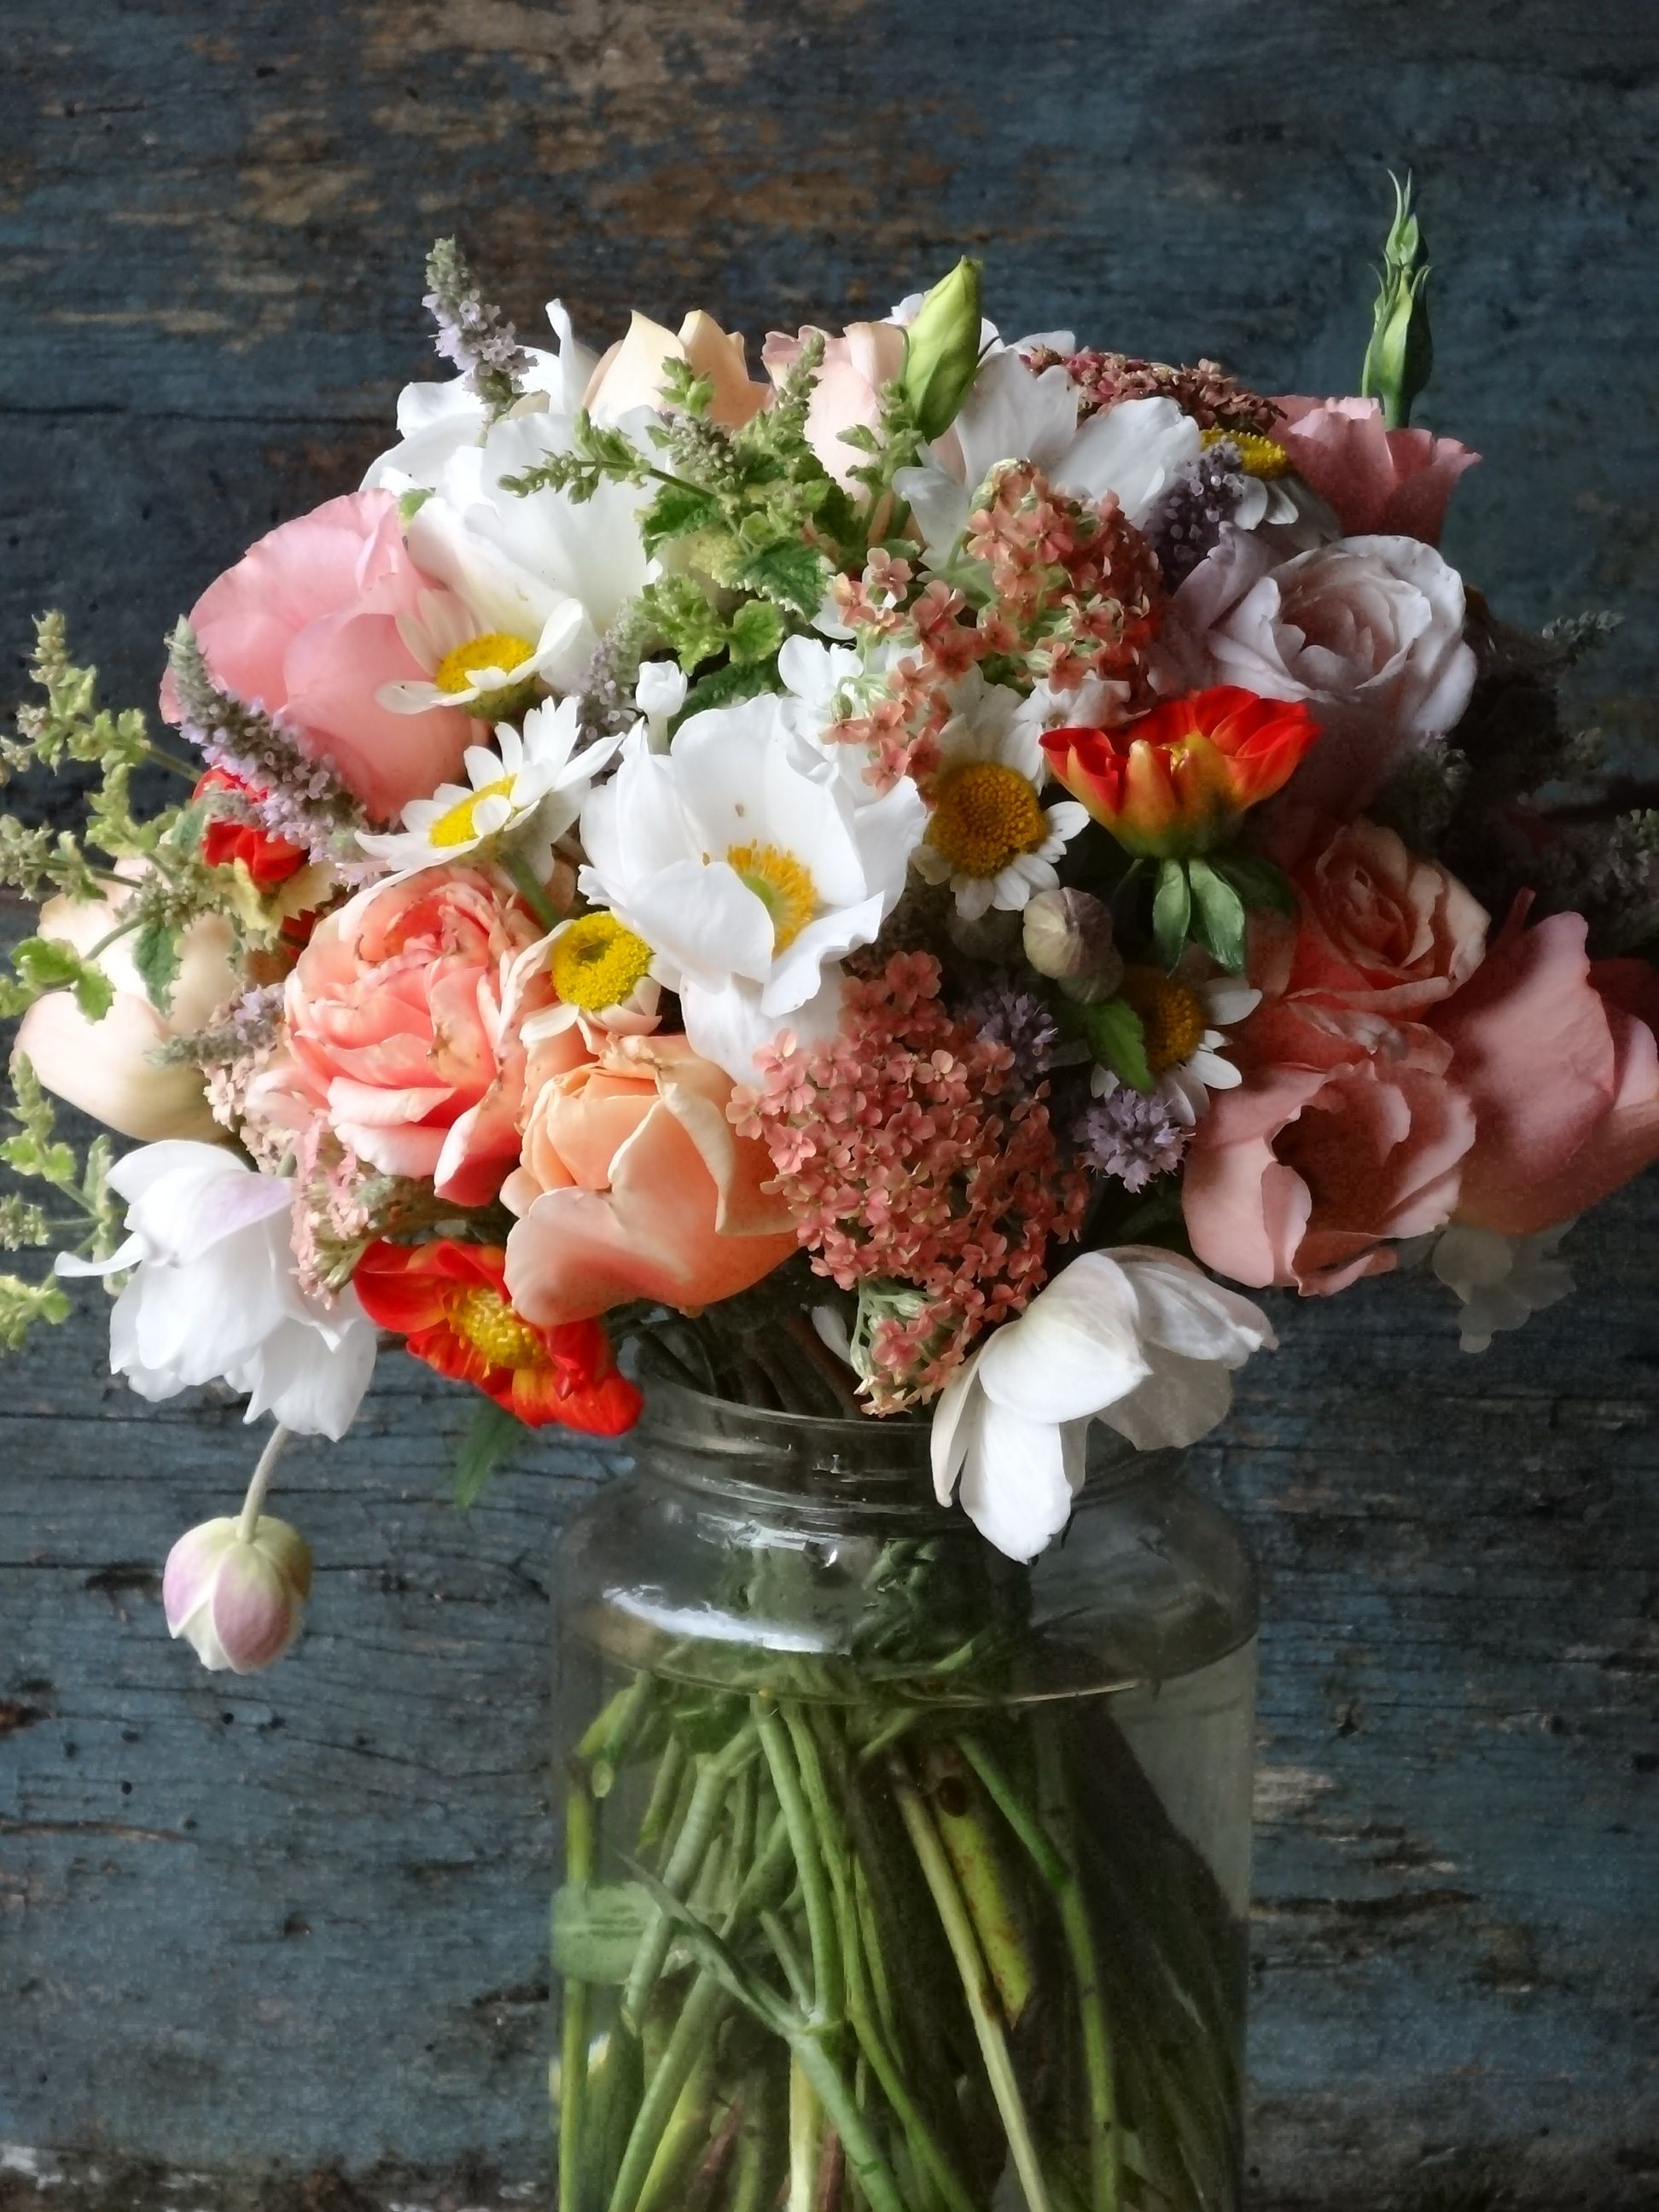 Peachy wedding flowers august from catkin tkinflowers